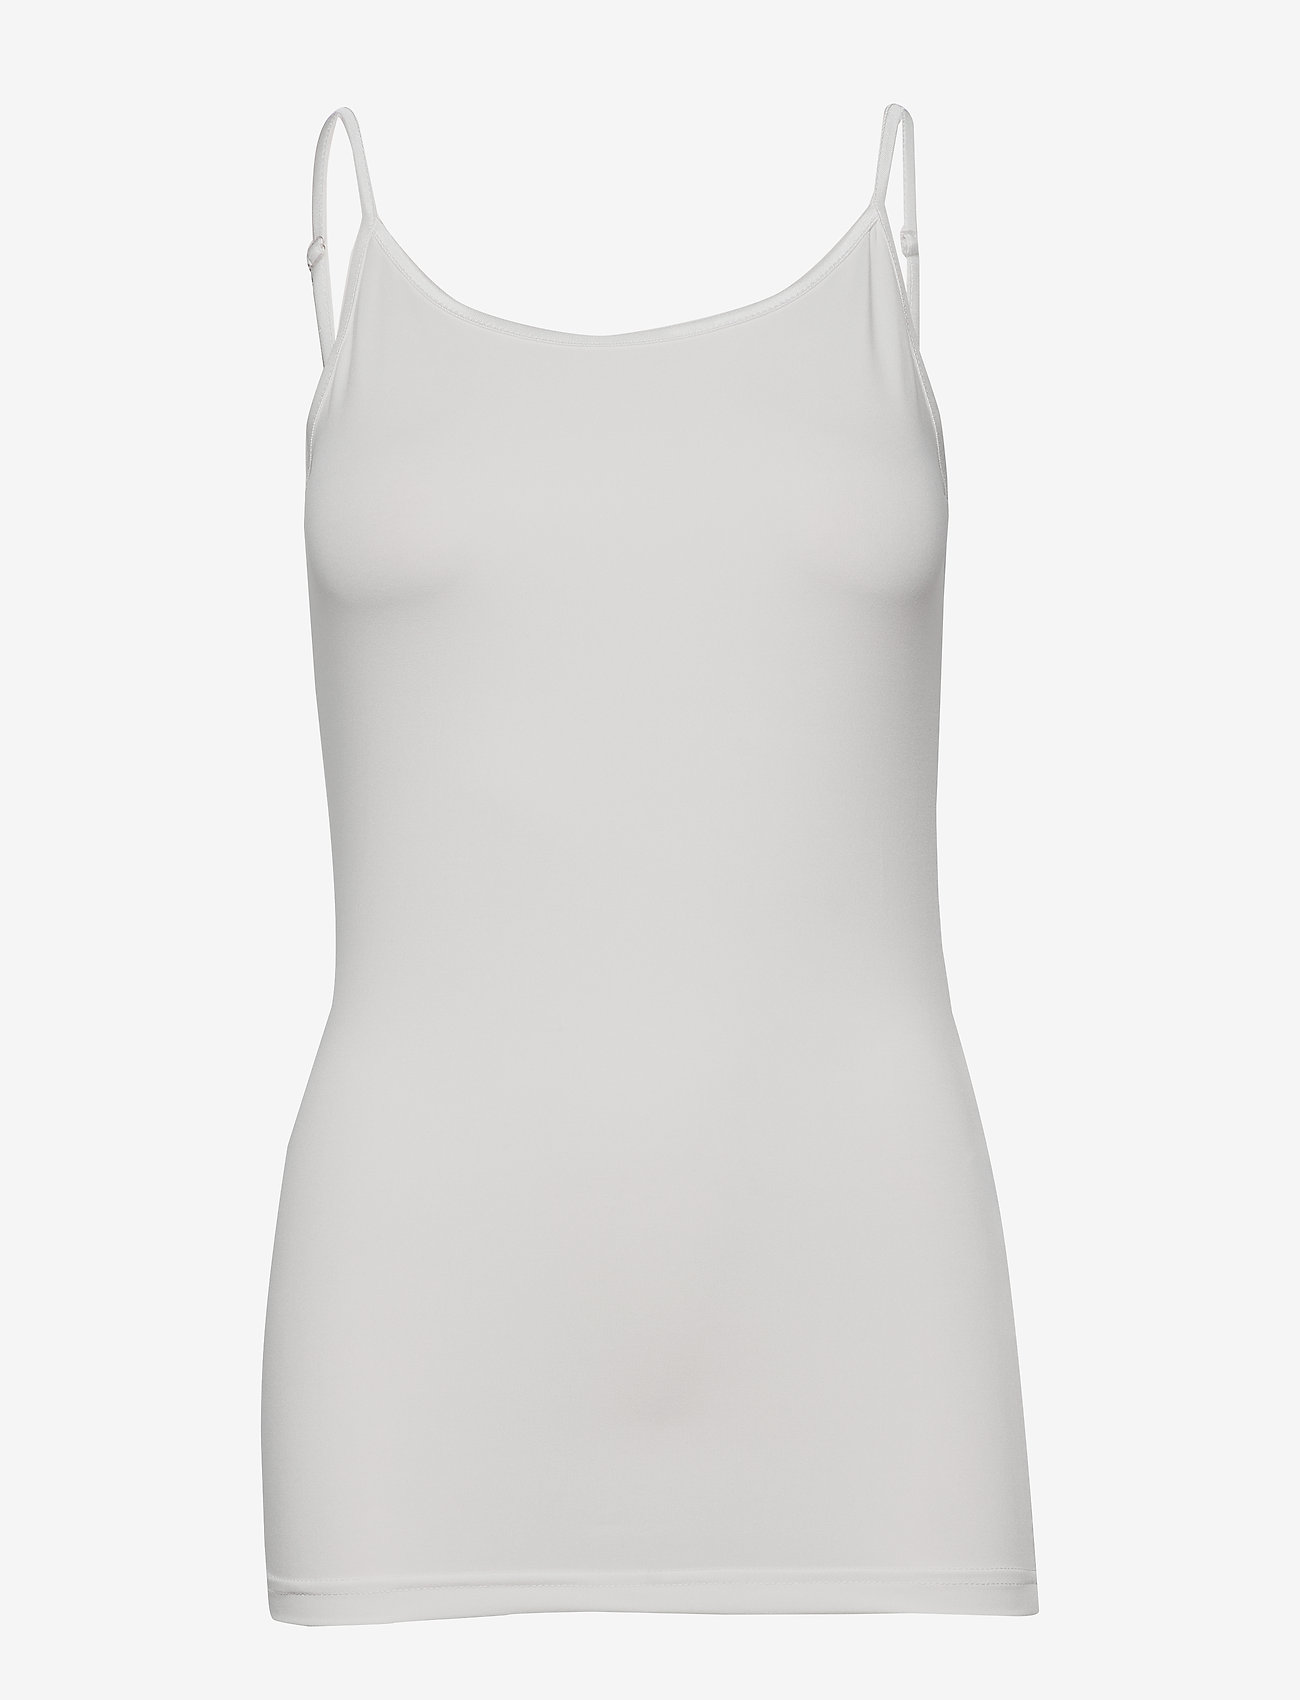 b.young - Iane strap top - - linnen - off white - 0